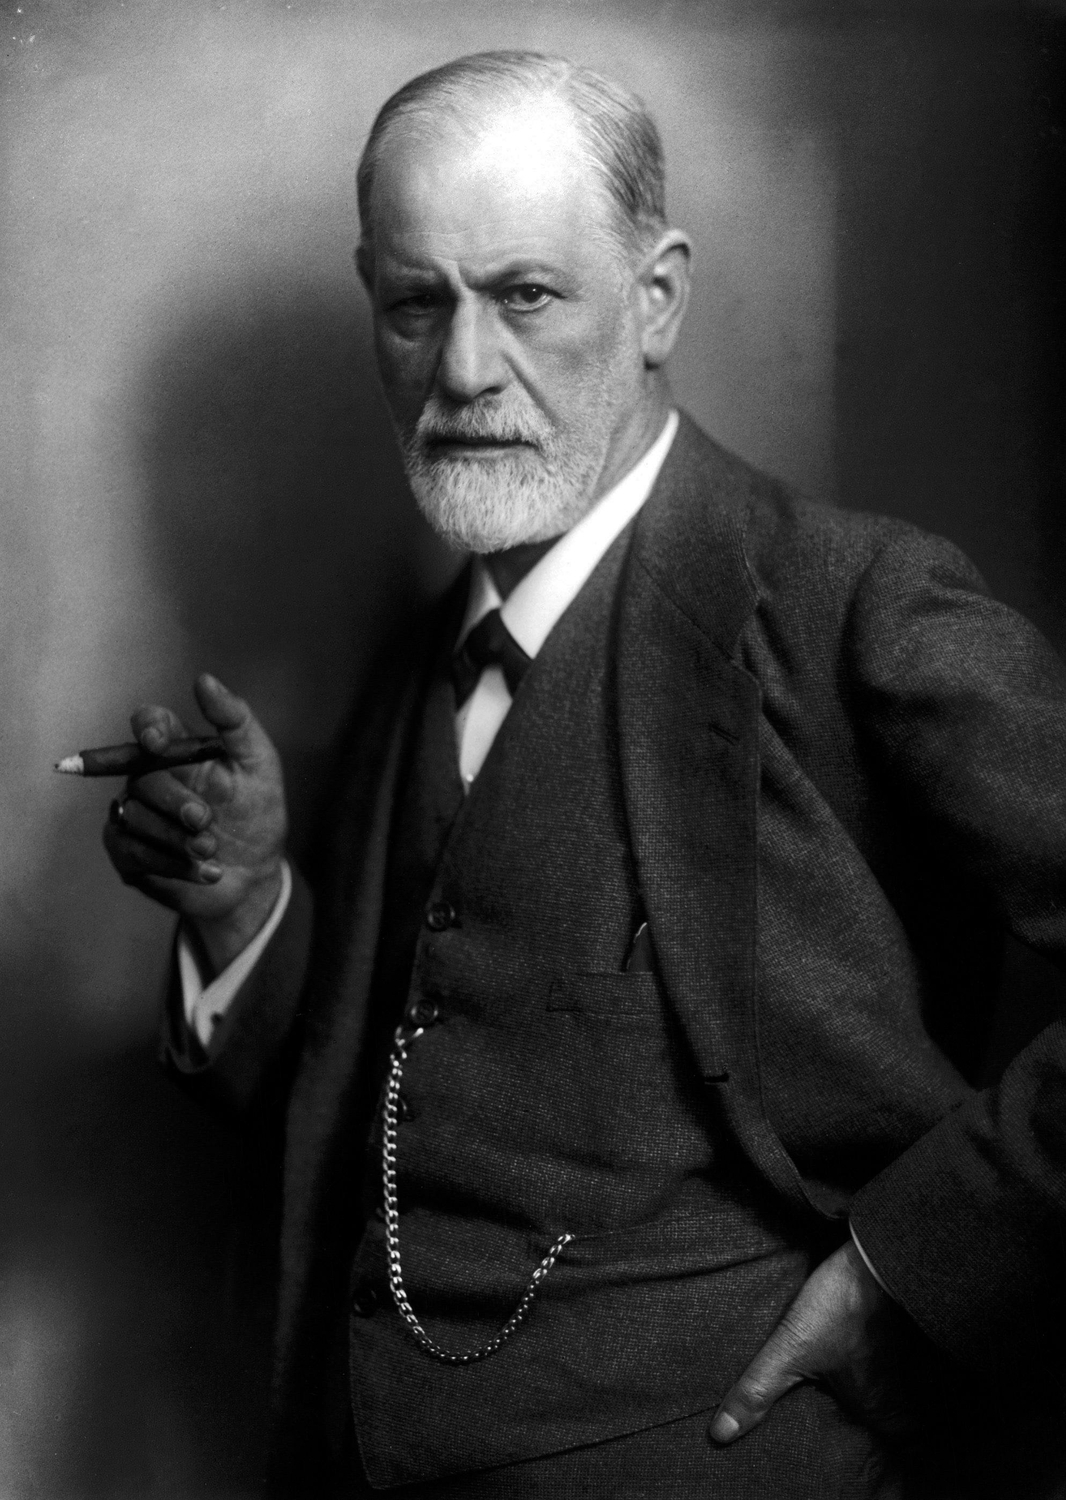 freudian psychoanalysis literary theory and criticism notes